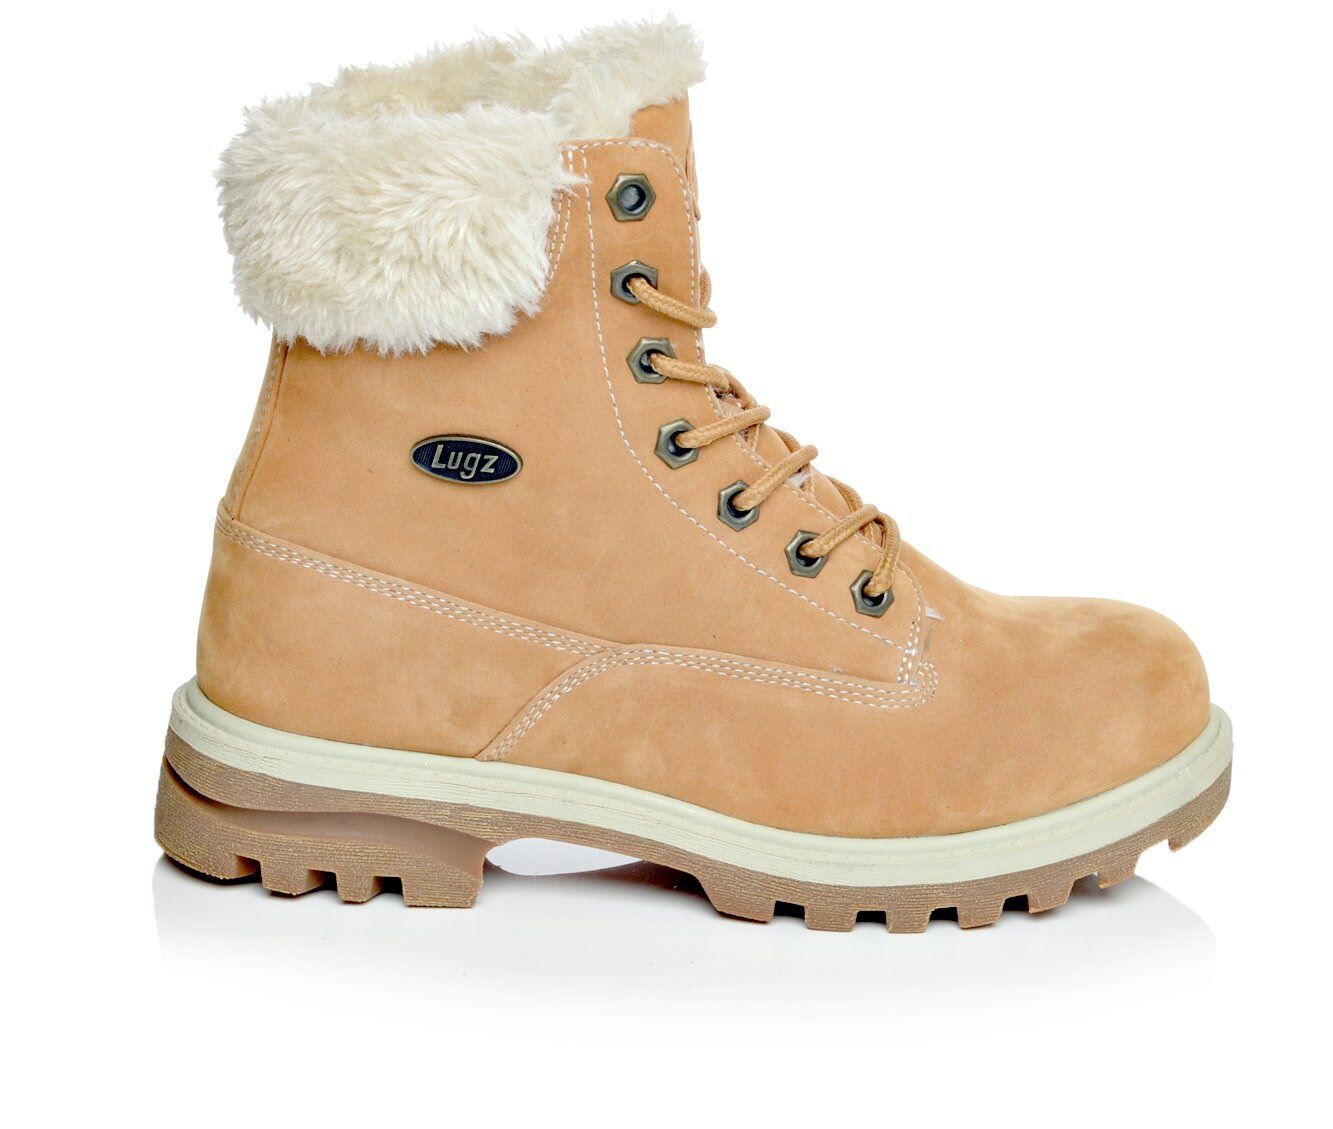 Lugz Empire Hi Faux-Fur ... Women's Water-Resistant Boots buy cheap Inexpensive buy cheap footlocker tumblr outlet discount authentic free shipping clearance store tbHln